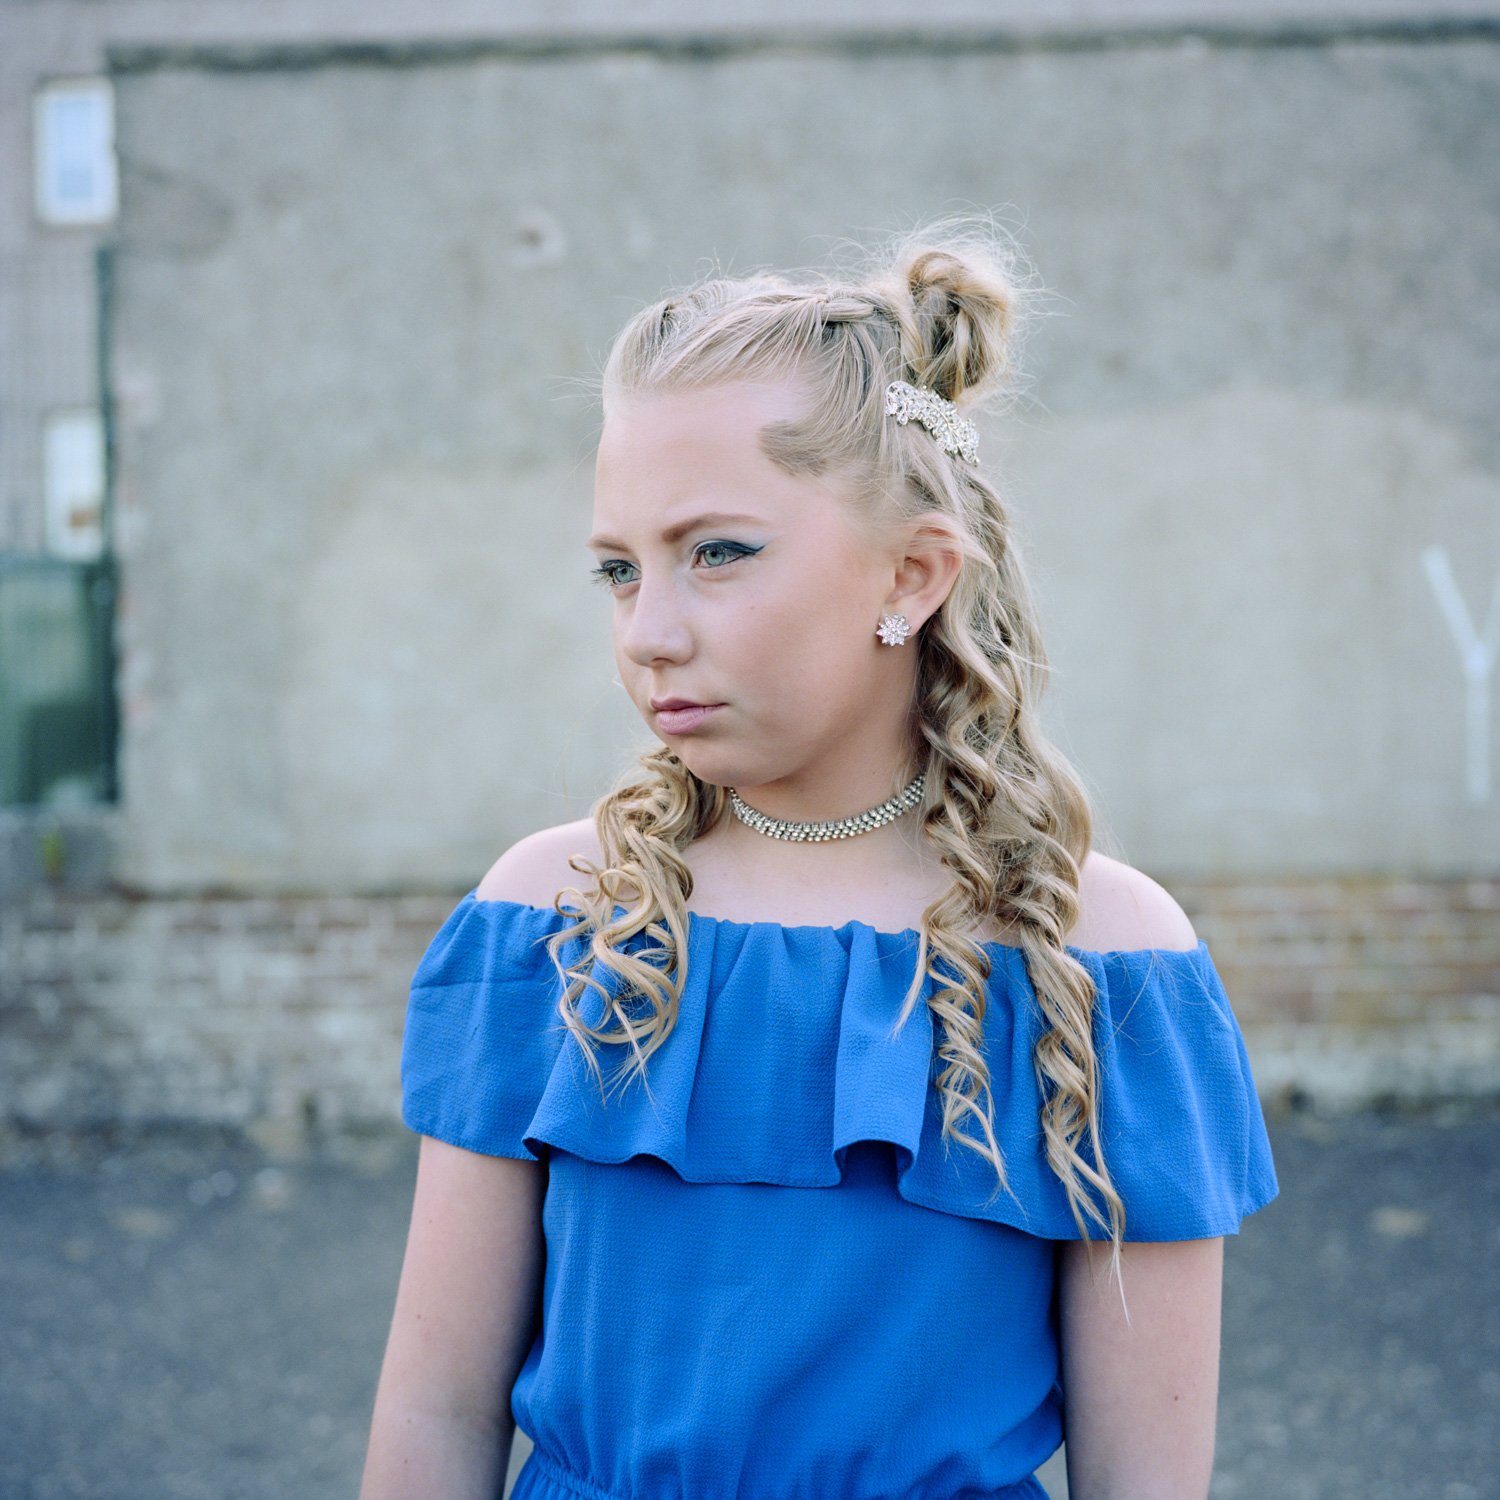 Photos of family, loss and love in Scottish housing estates